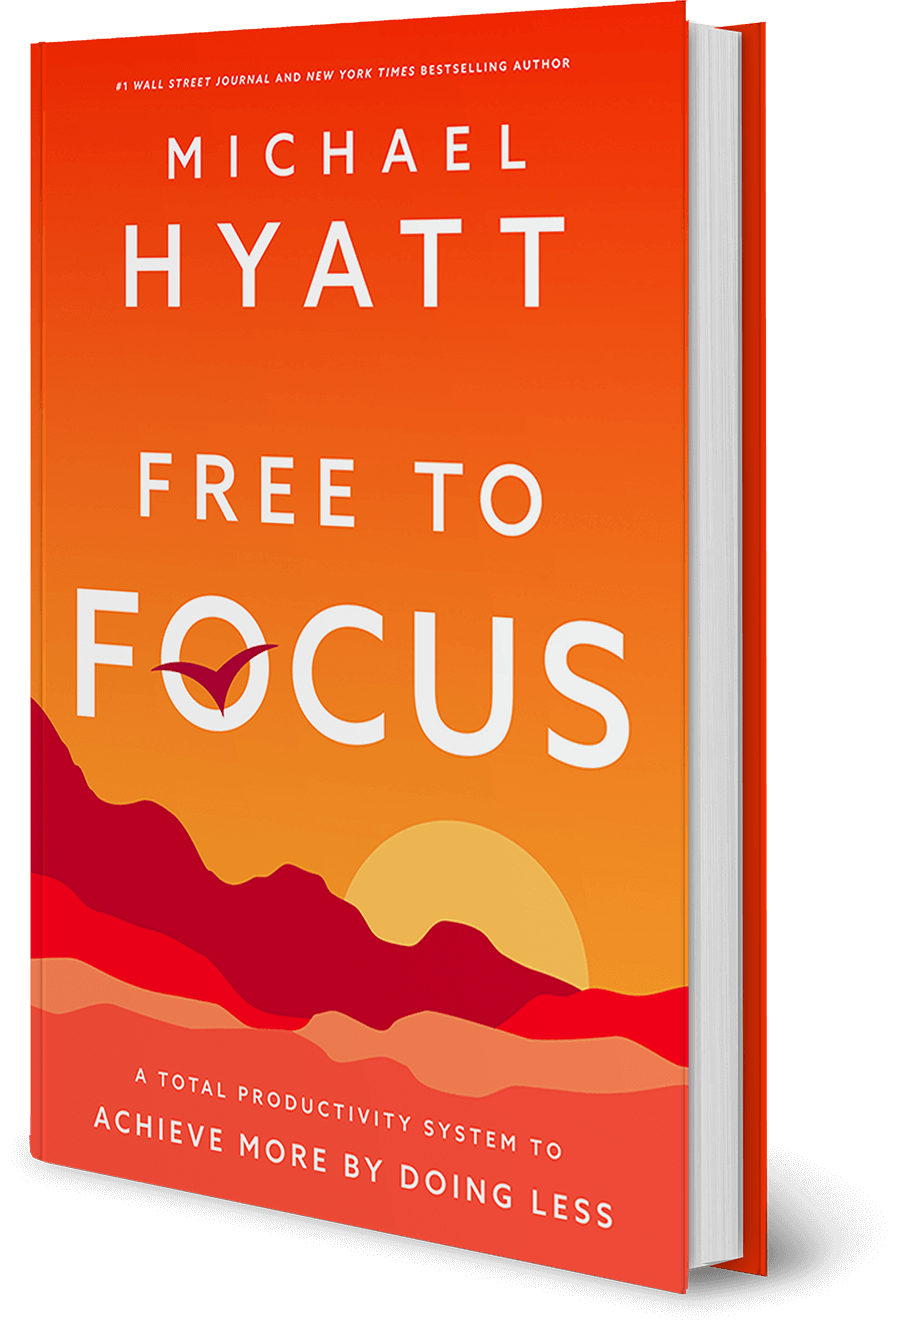 free-to-focus-book-michael-hyatt